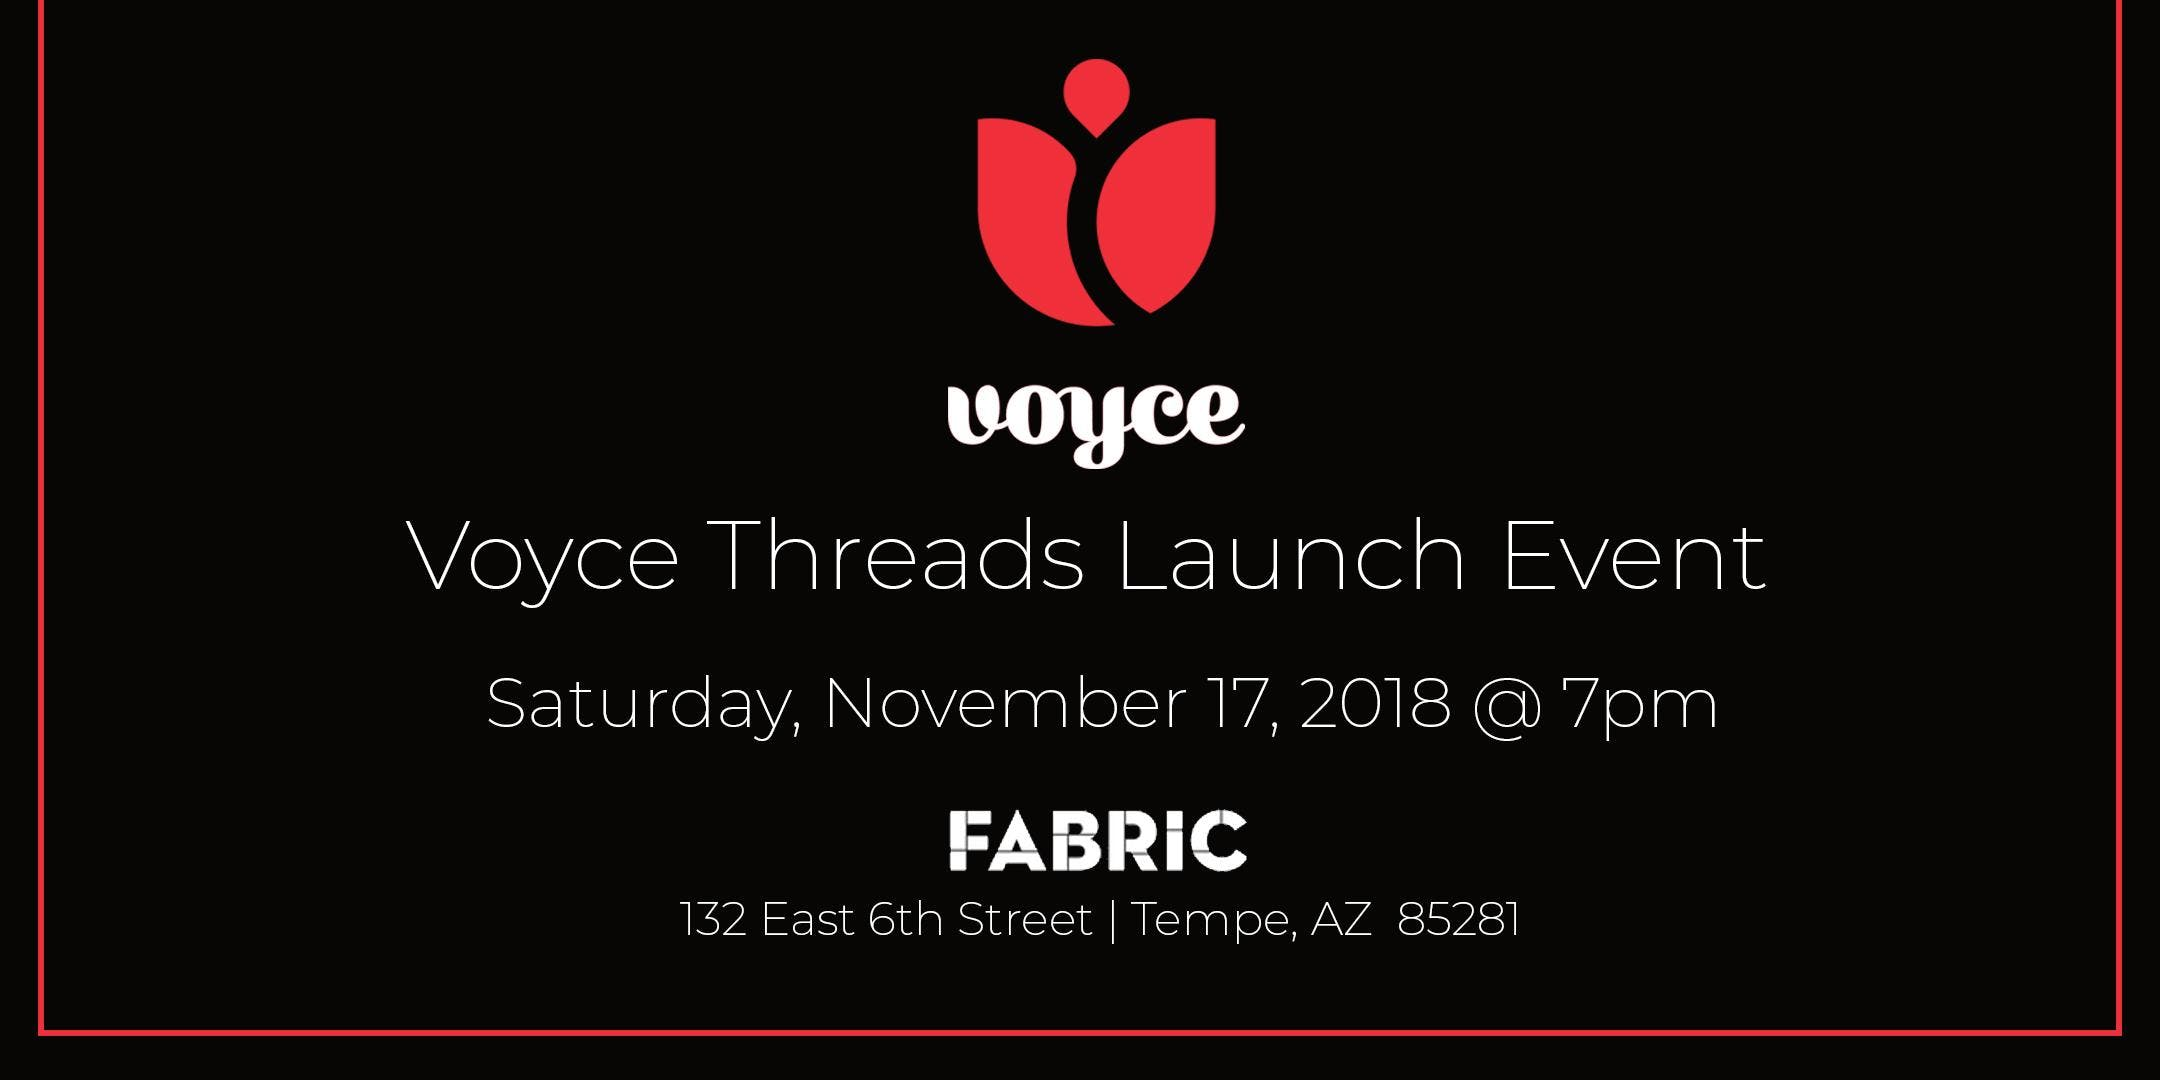 Voyce Threads Launch Event